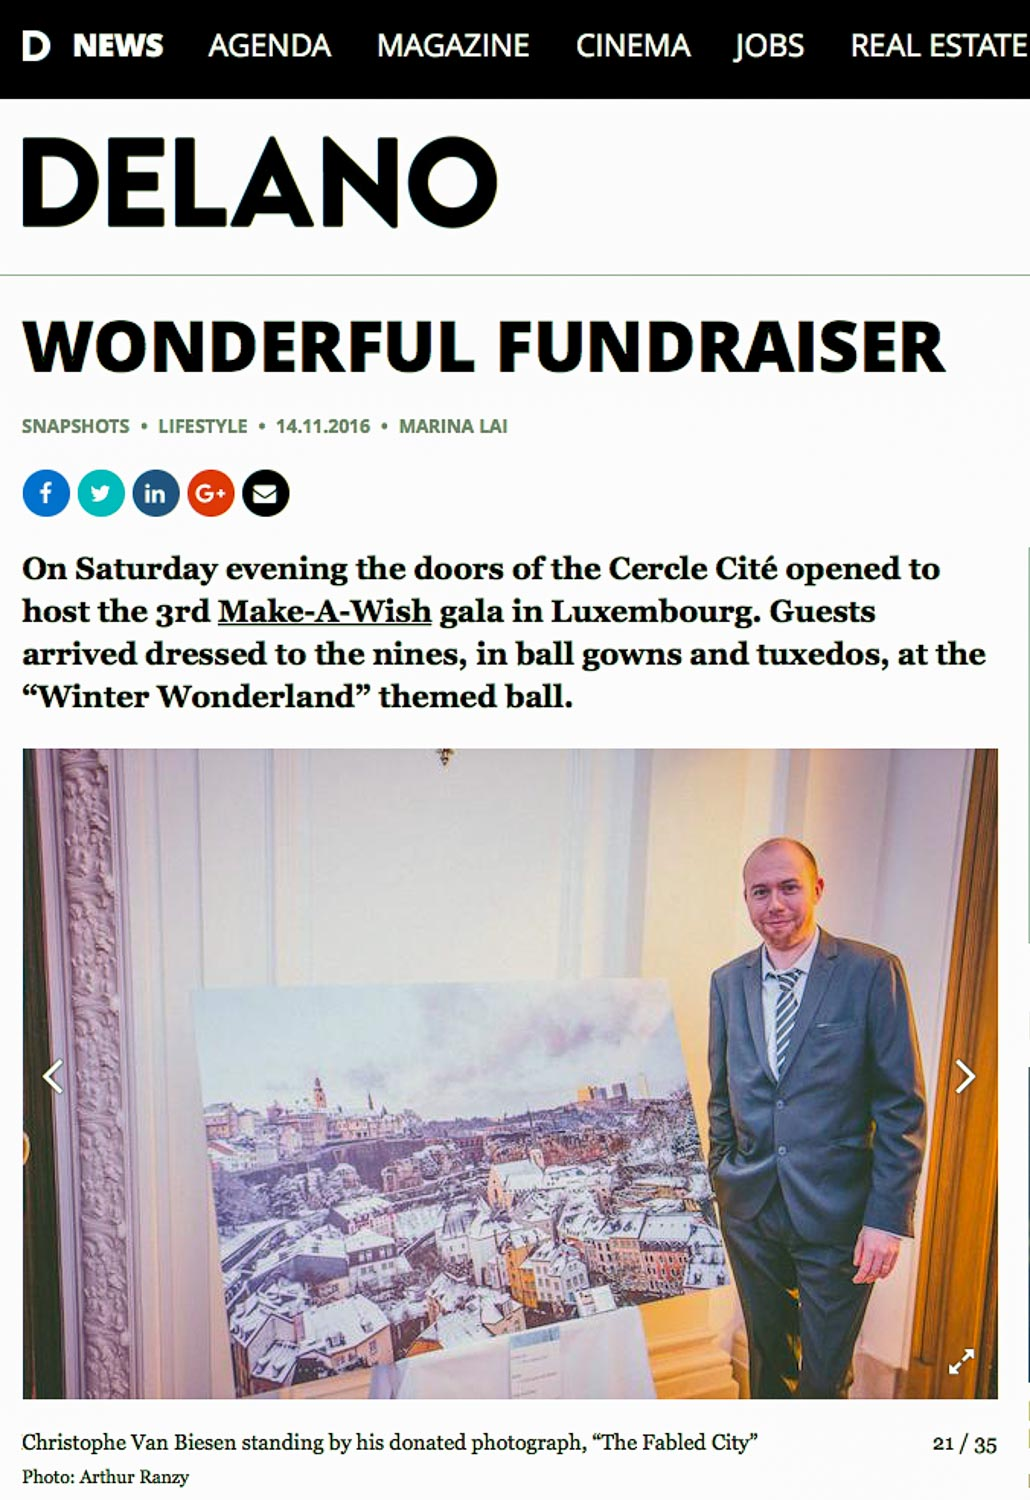 Article in Delano Magazine Luxembourg about Make-A-Wish Luxembourg Winter Wonderland Gala and Auction 2016